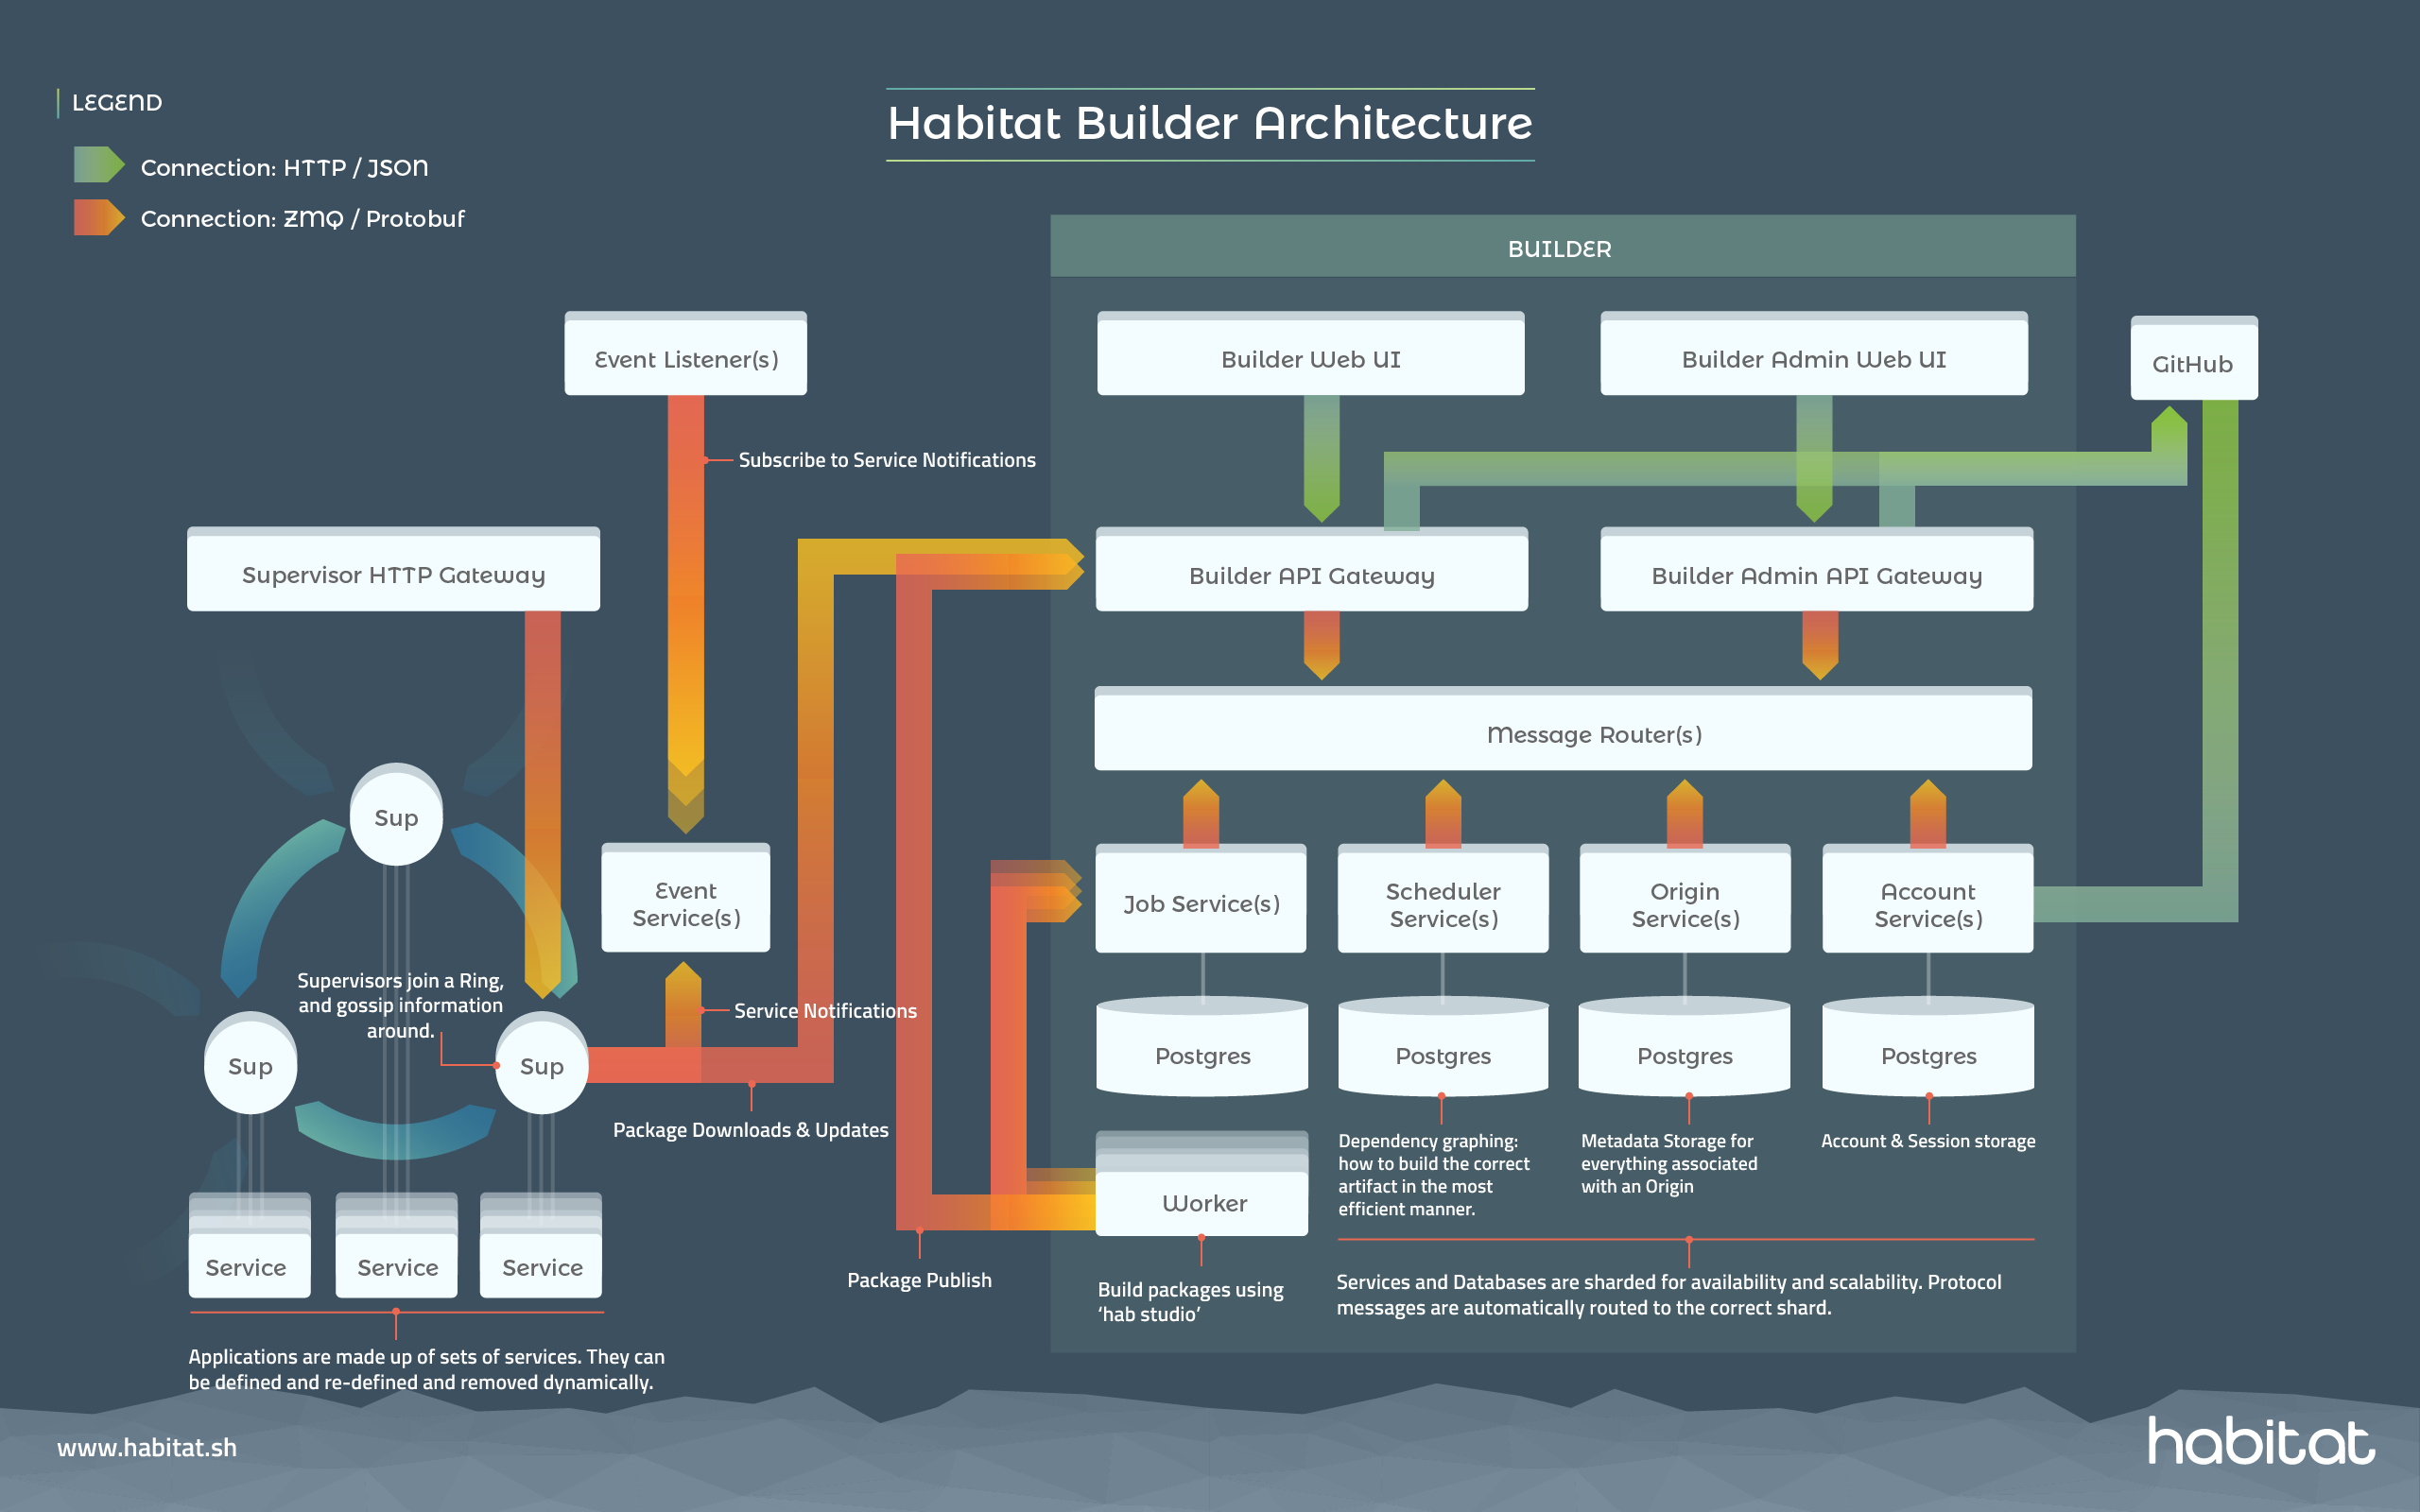 Chef Habitat Builder Architecture Diagram